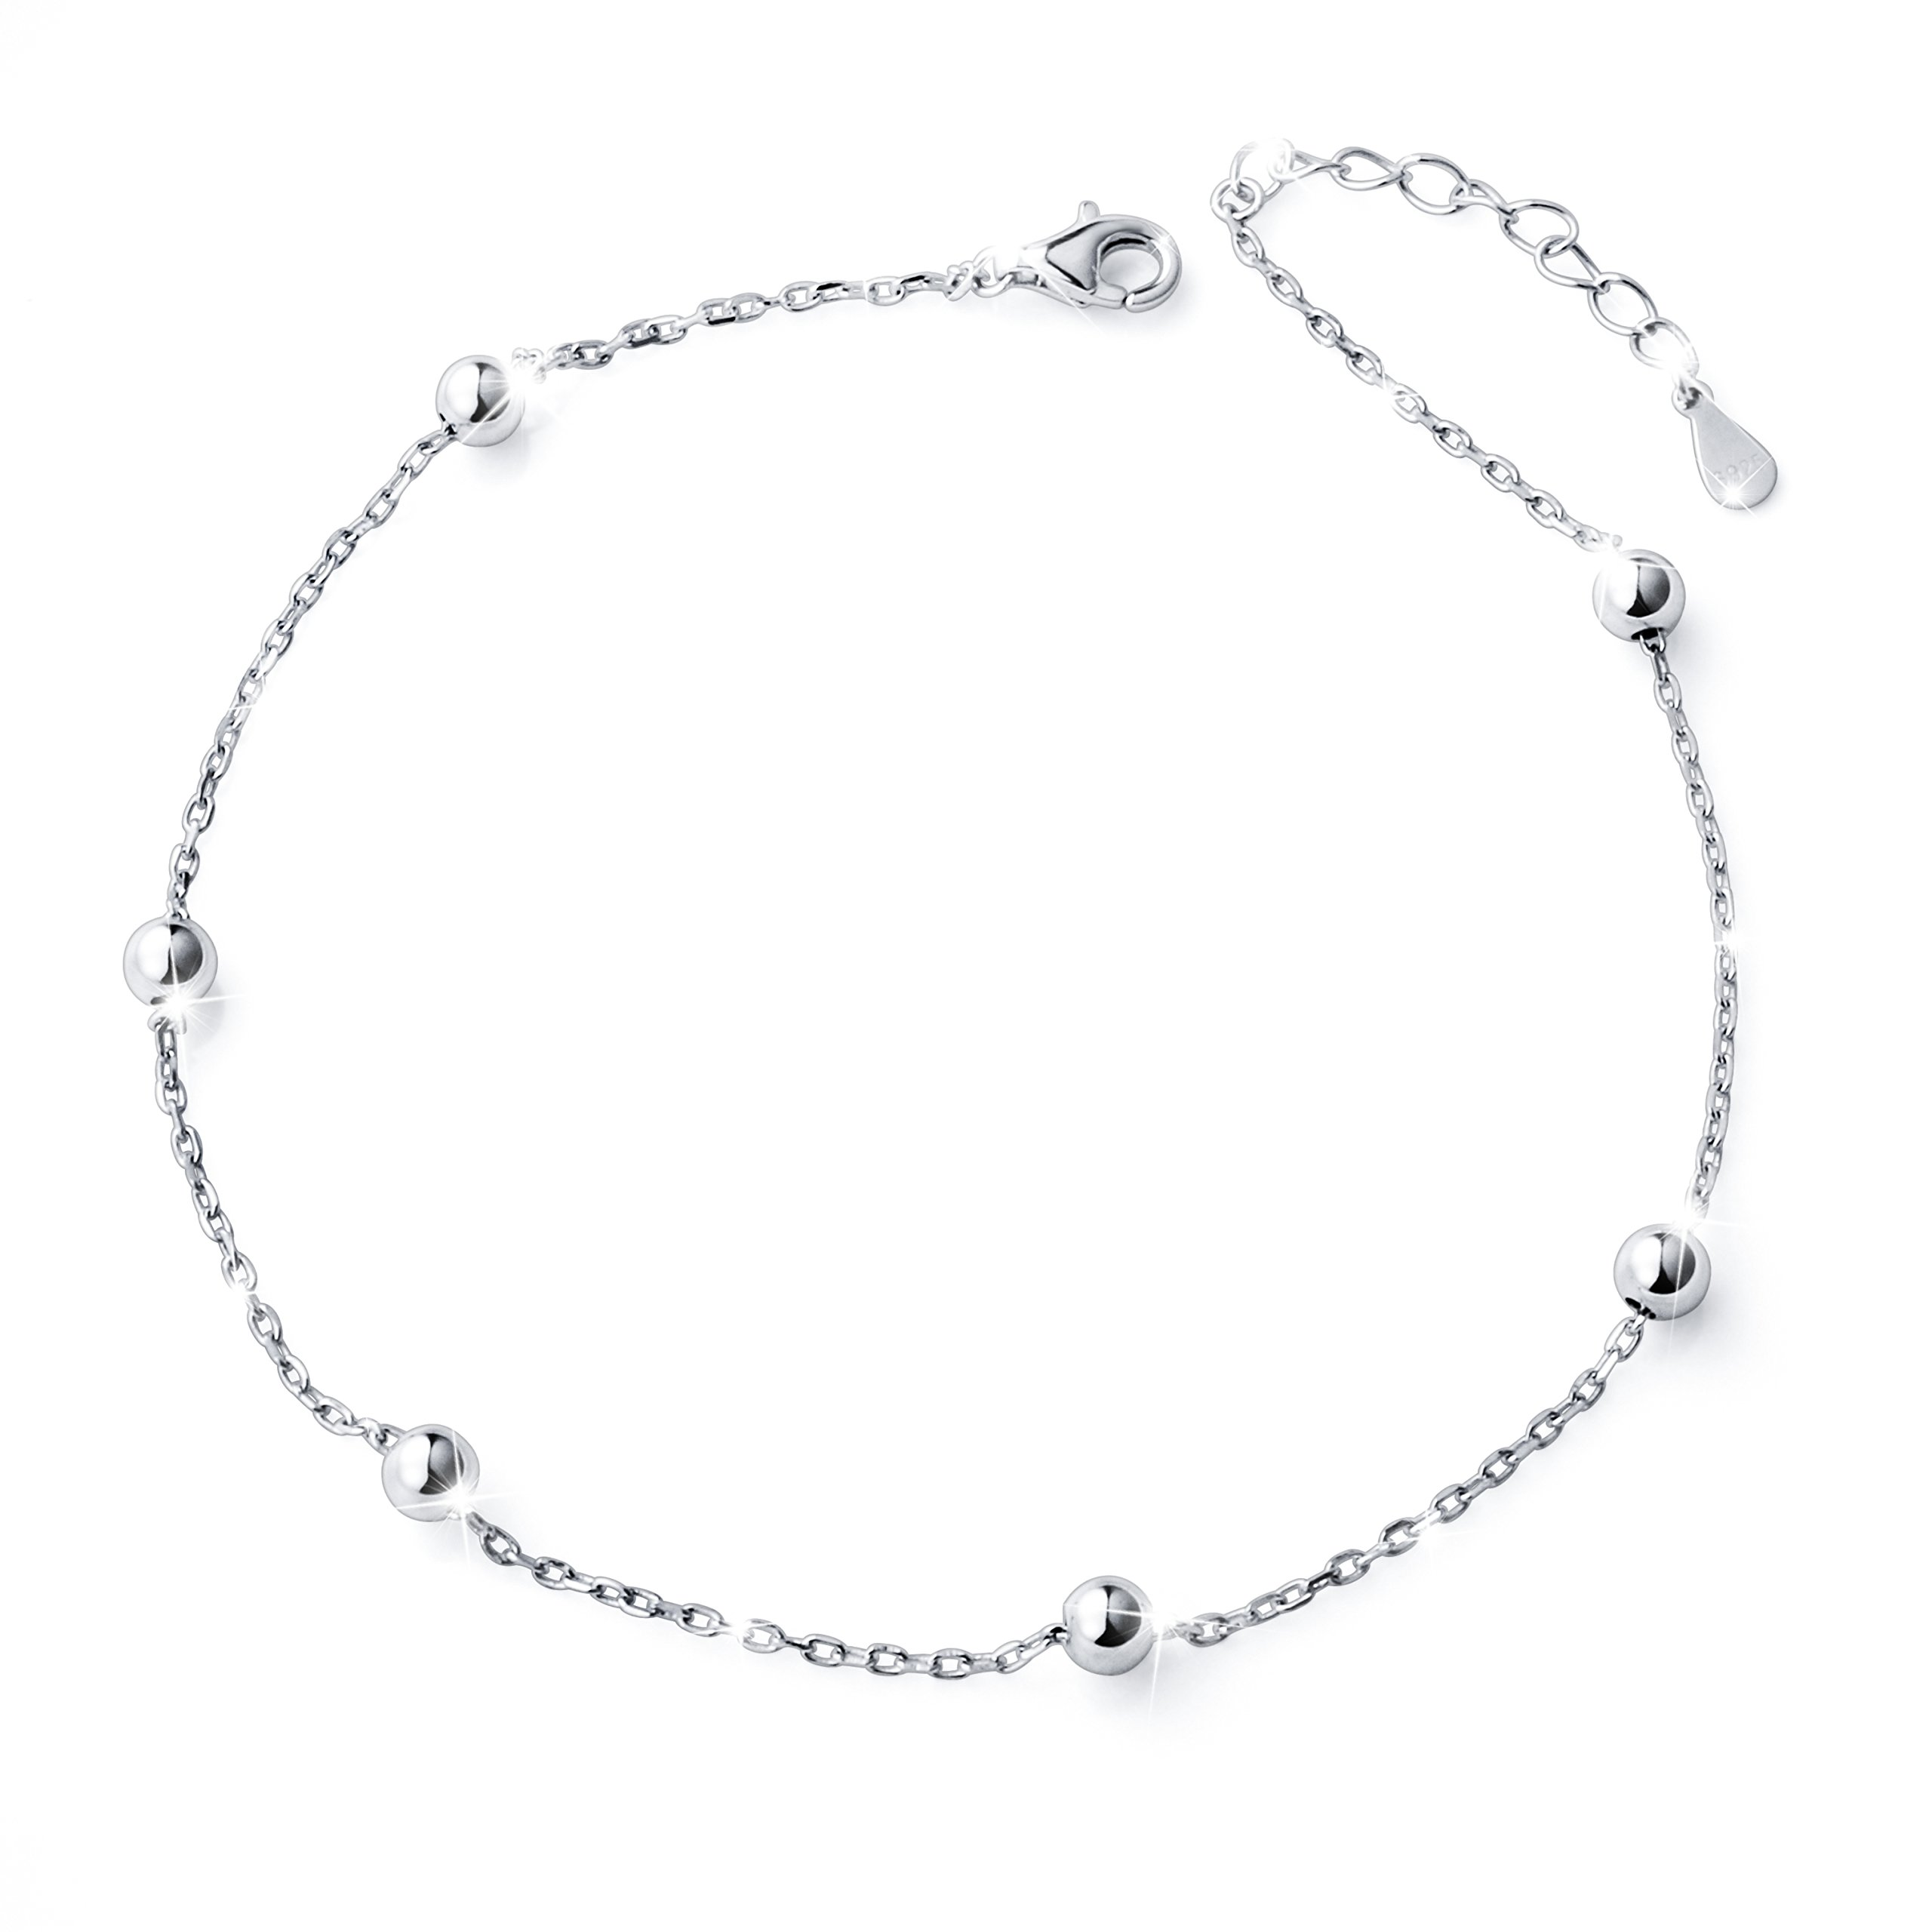 S925 Sterling Silver Bead Plus Anklet for Women Girl Adjustable Beach Style Foot Ankle Bracelet Jewelry